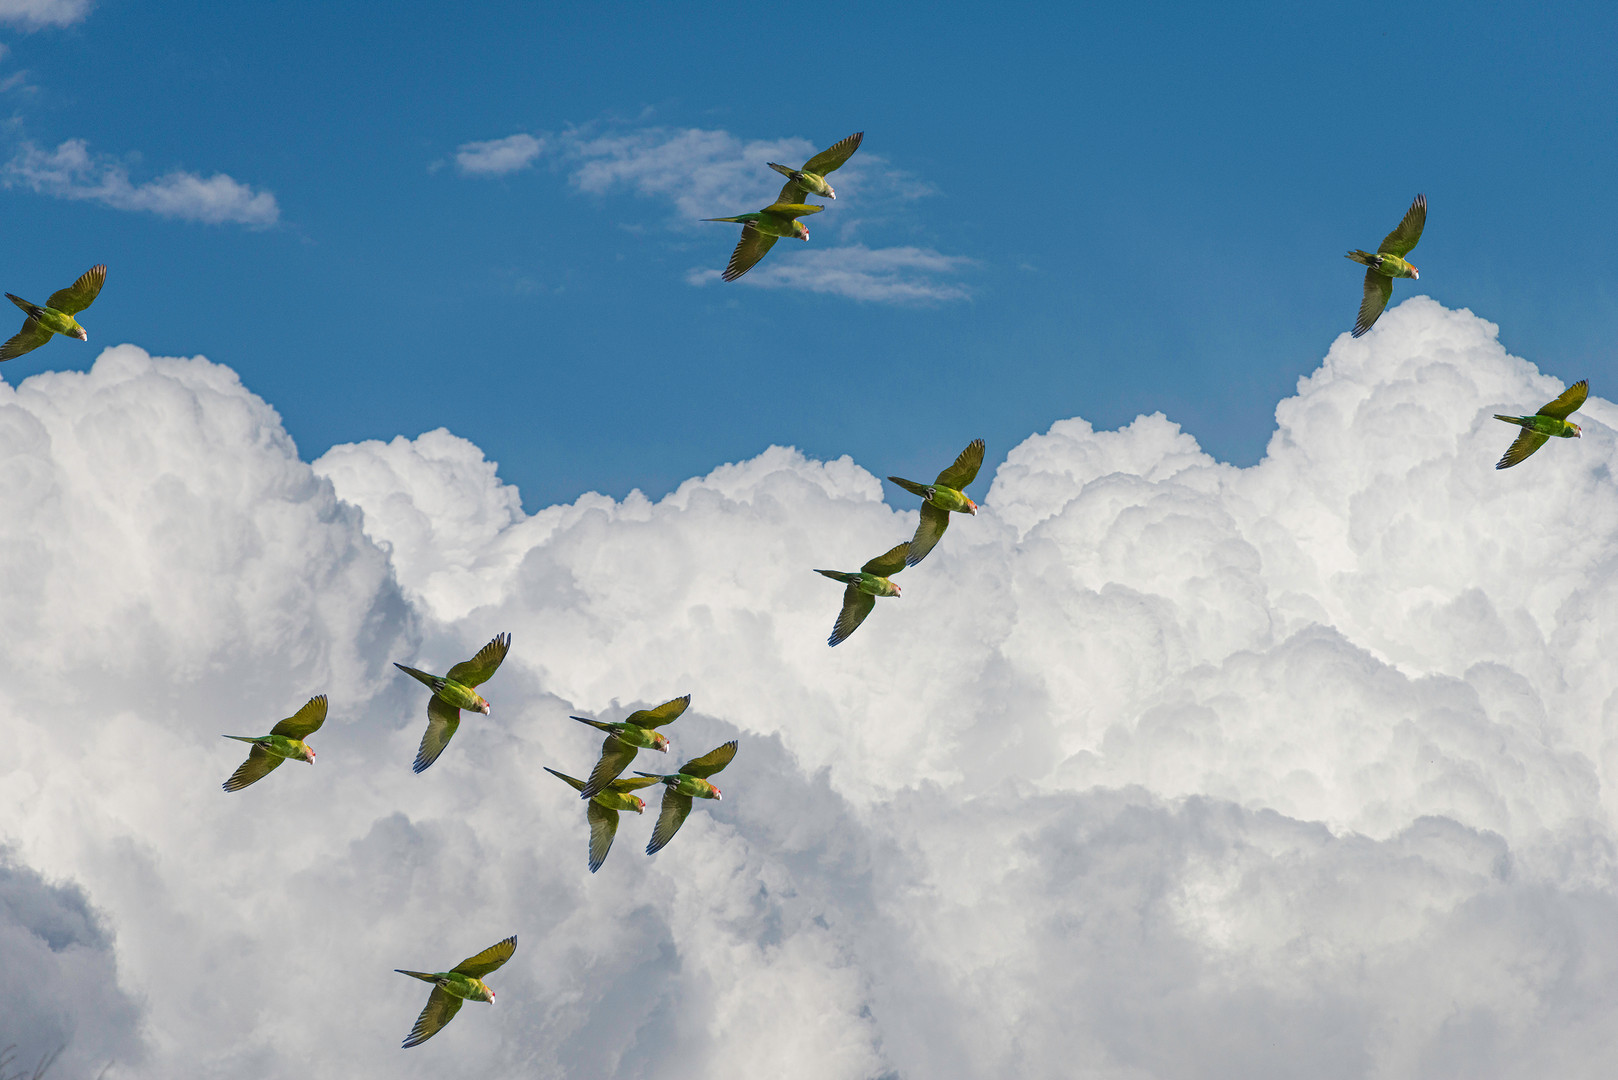 parrots in clouds 2 copy.jpg